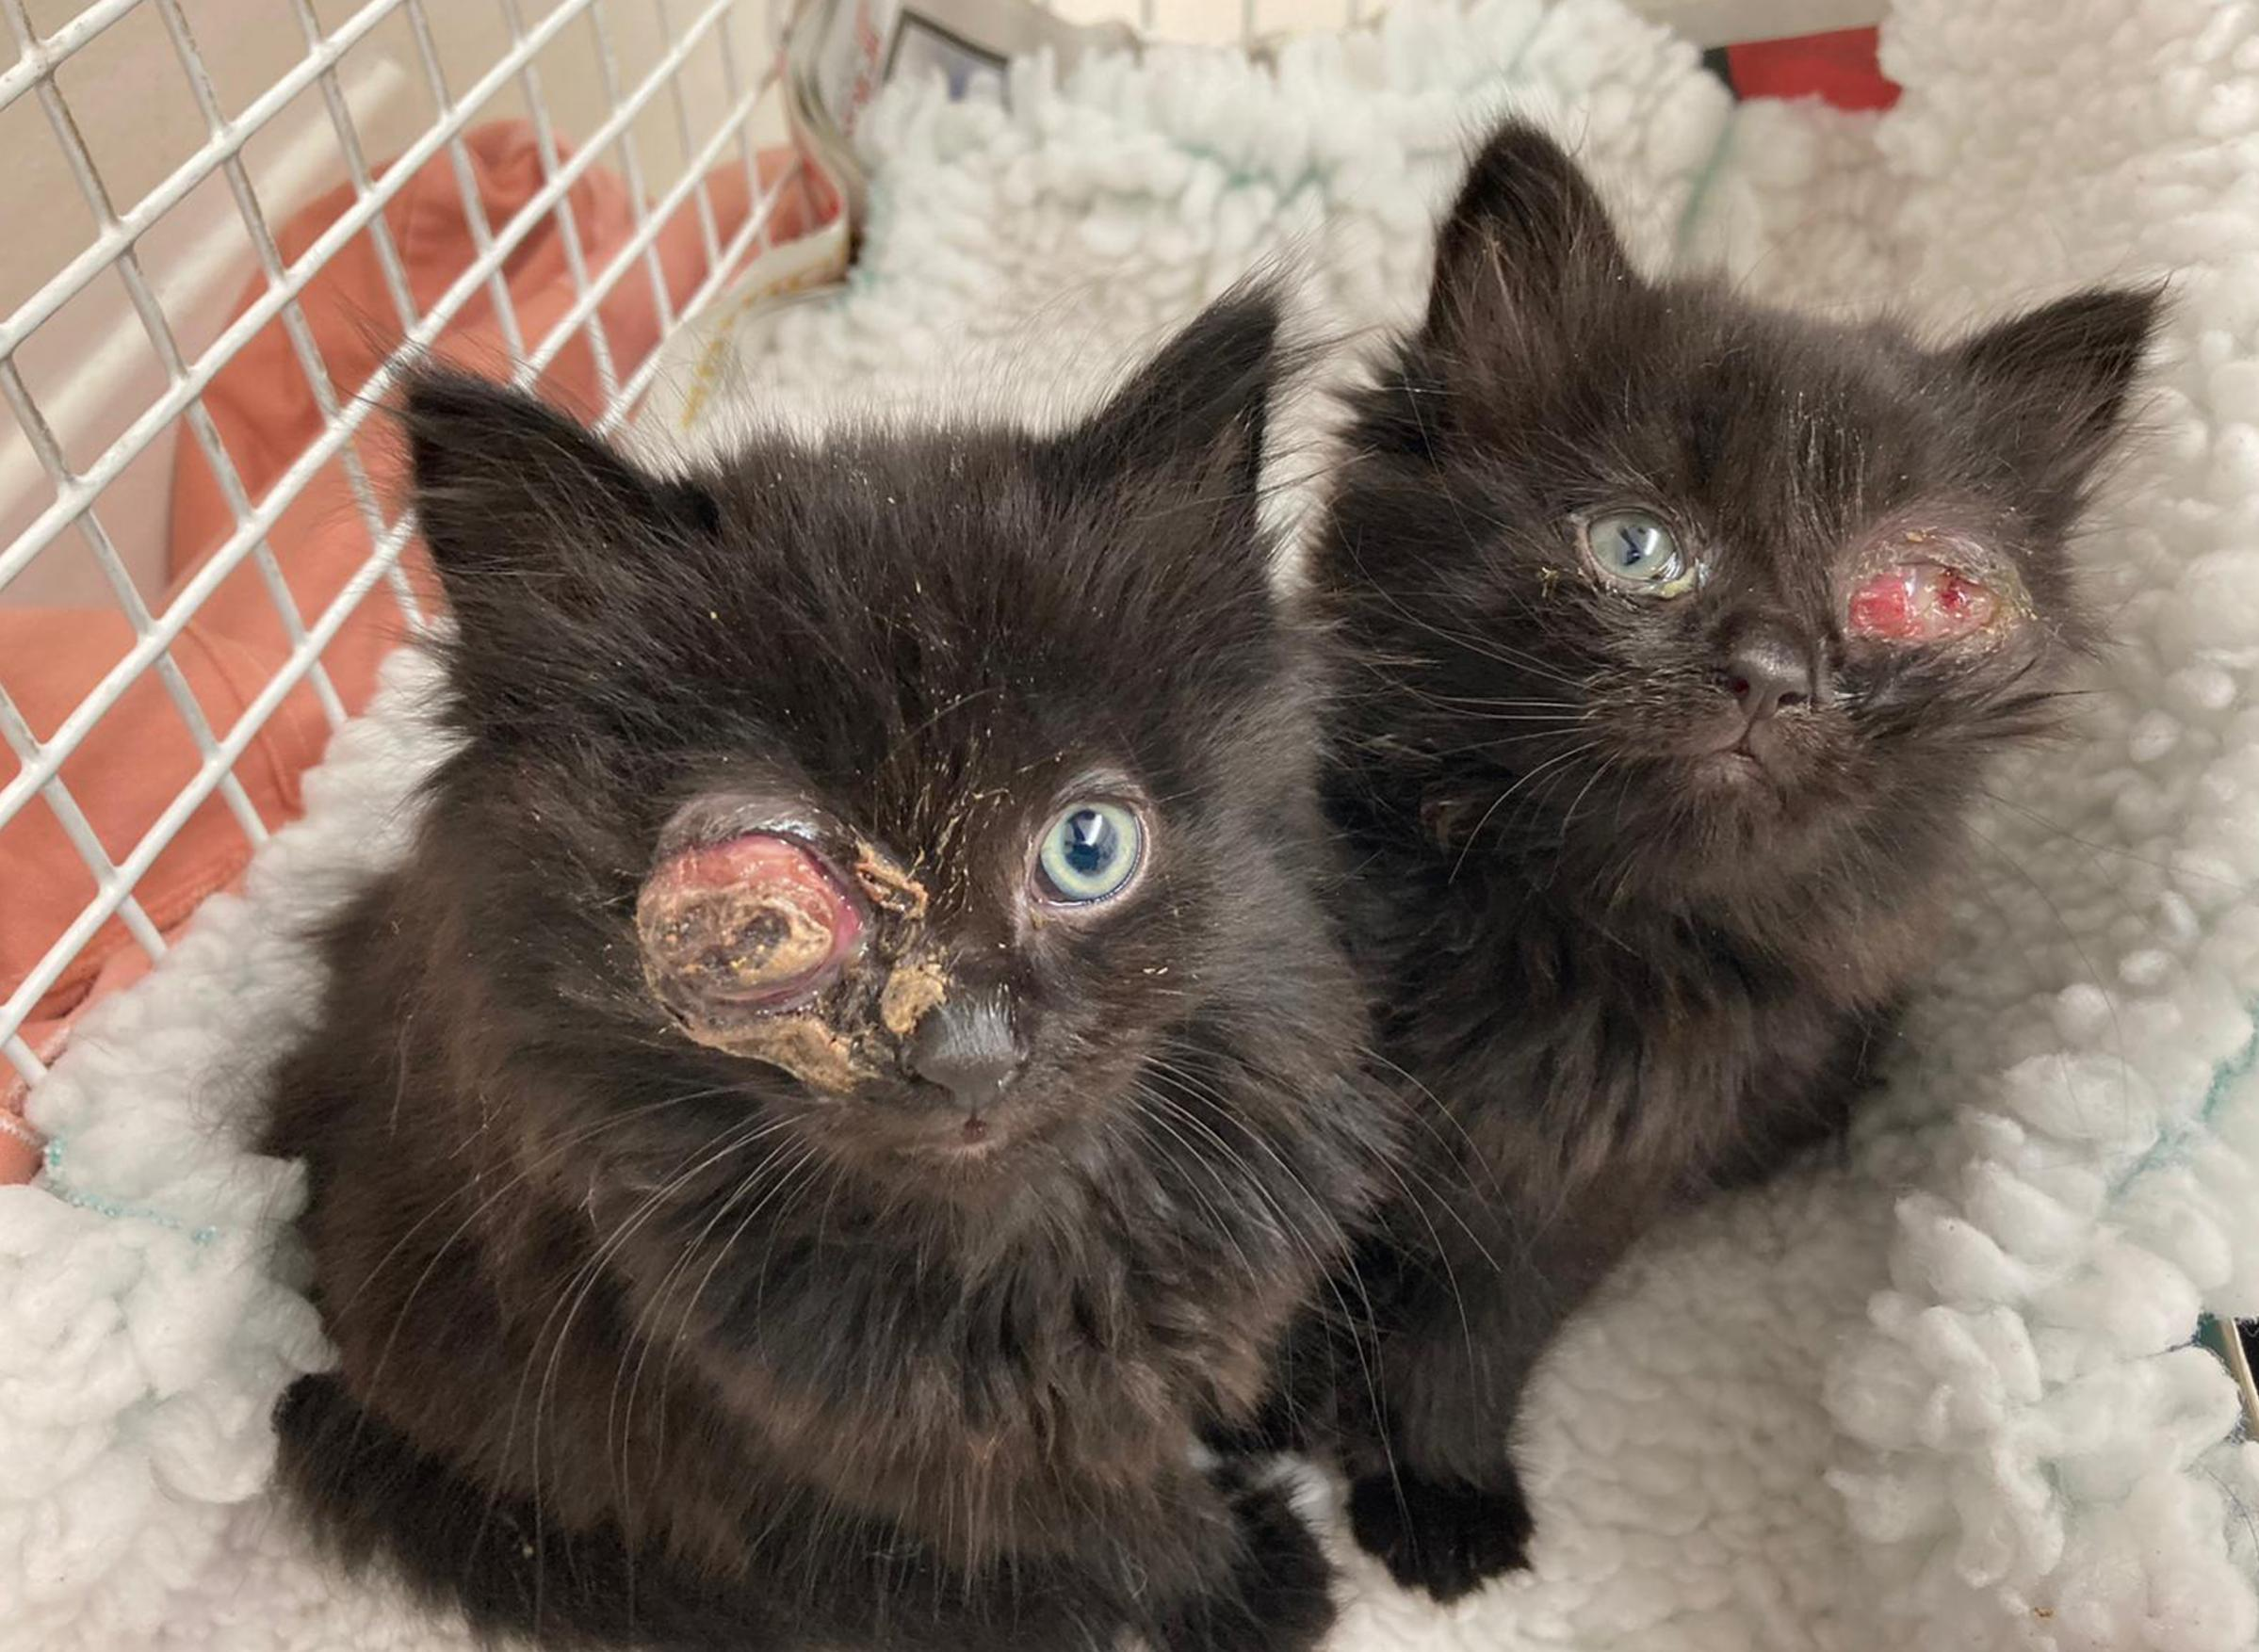 Tiny Kittens Found Tied In A Plastic Bag With Horrific Injuries Hereford Times